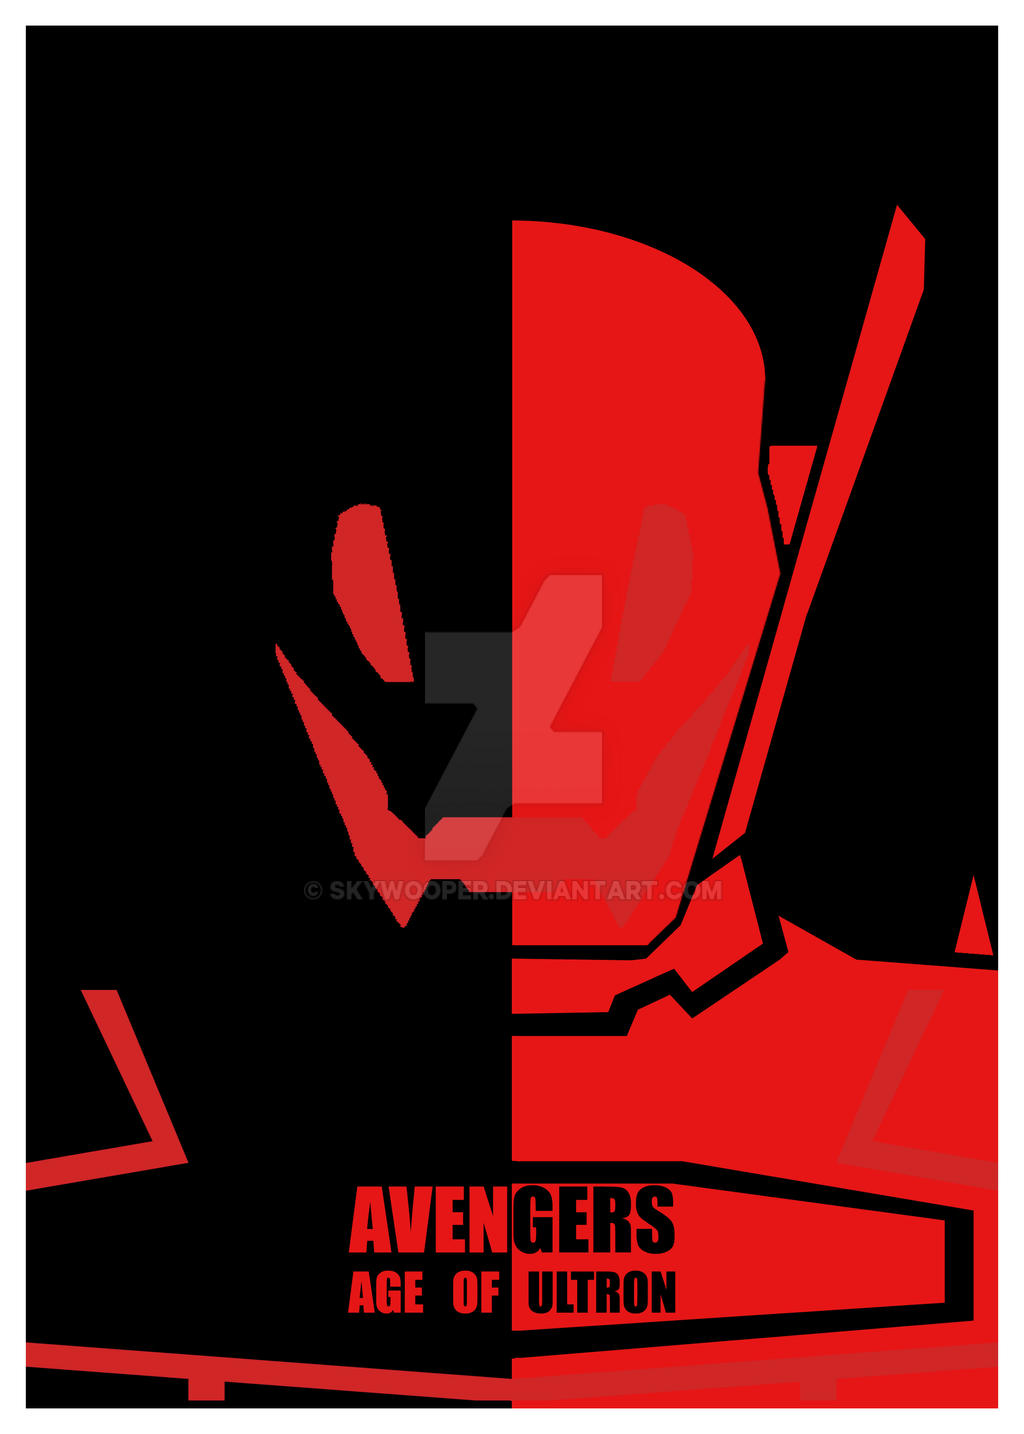 Avengers Age Of Ultron By Iloegbunam On Deviantart: Avengers Age Of Ultron By SkyWooper On DeviantArt